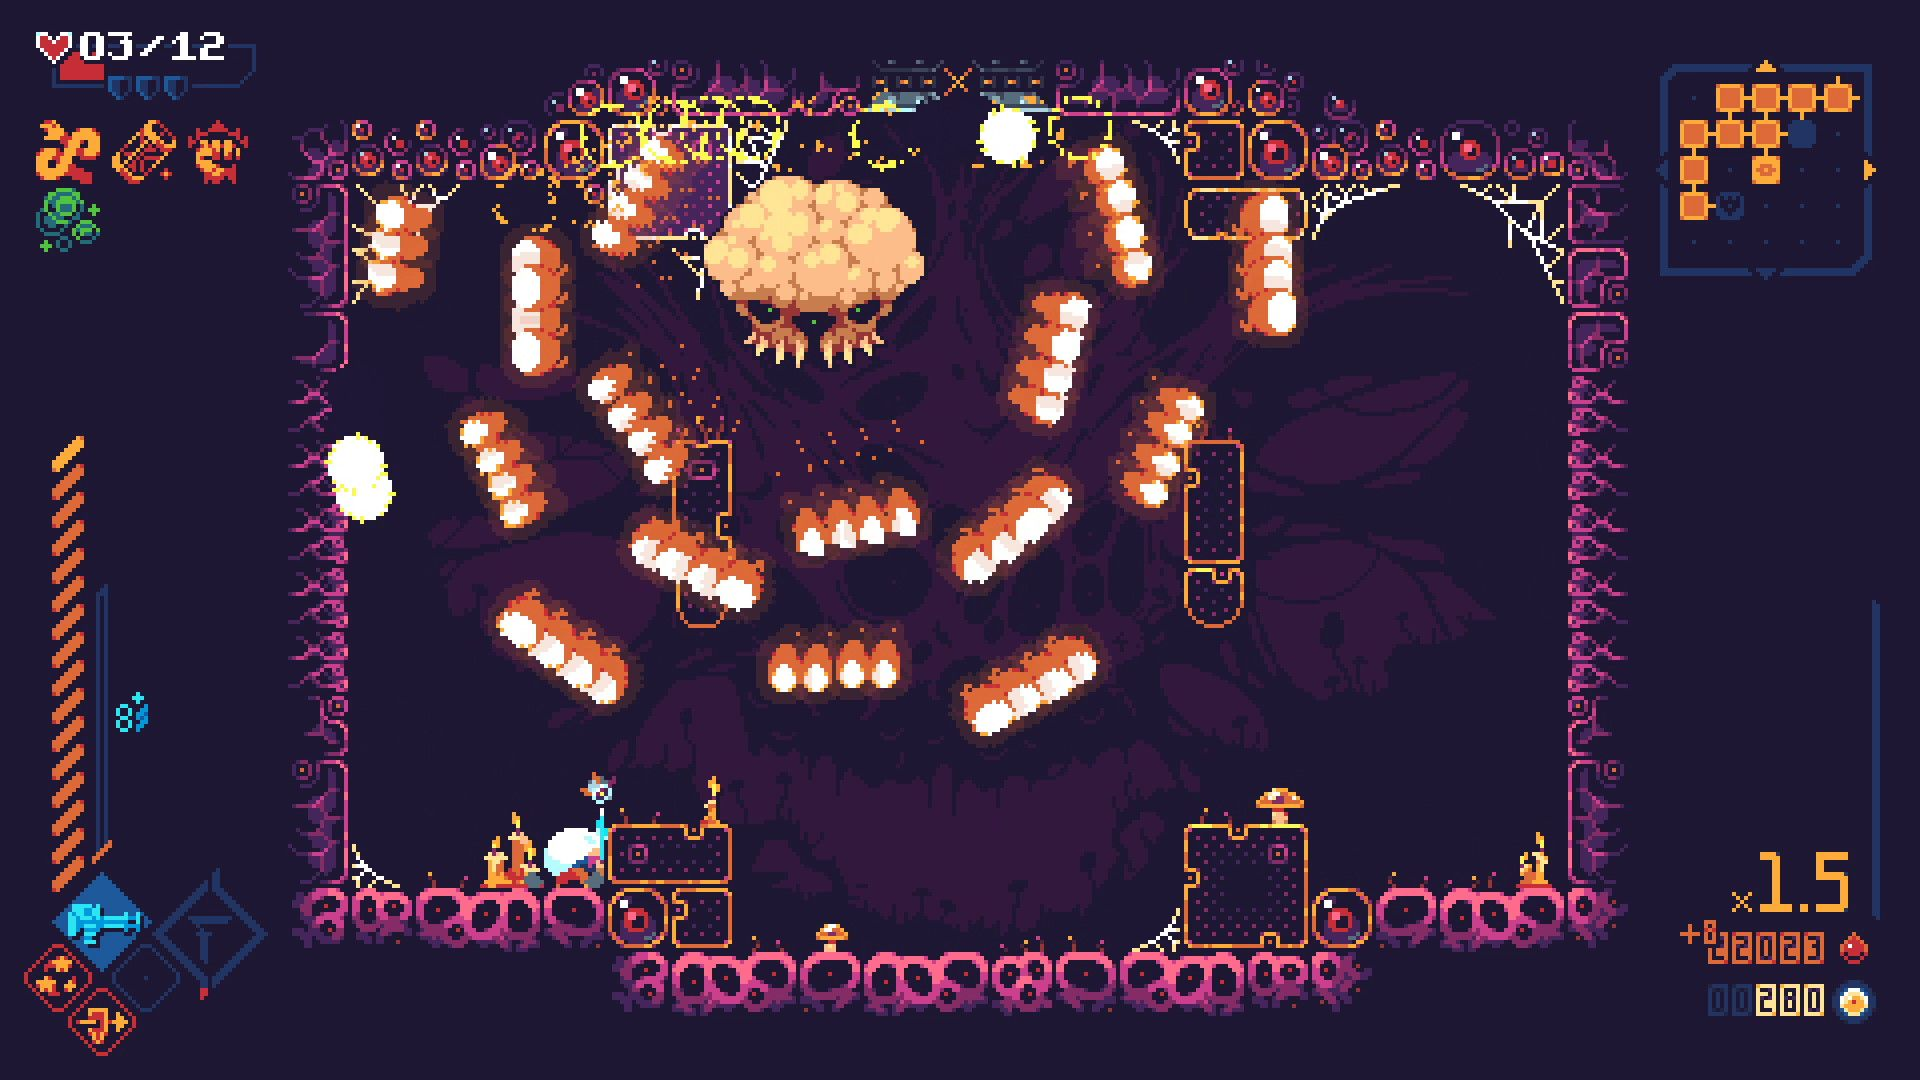 A screenshot of a dungeon room in ScourgeBringer, where a boss enemy resembling a cross between a jellyfish and an angry piece of popcorn is floating near the ceiling and spitting out waves of fireballs.